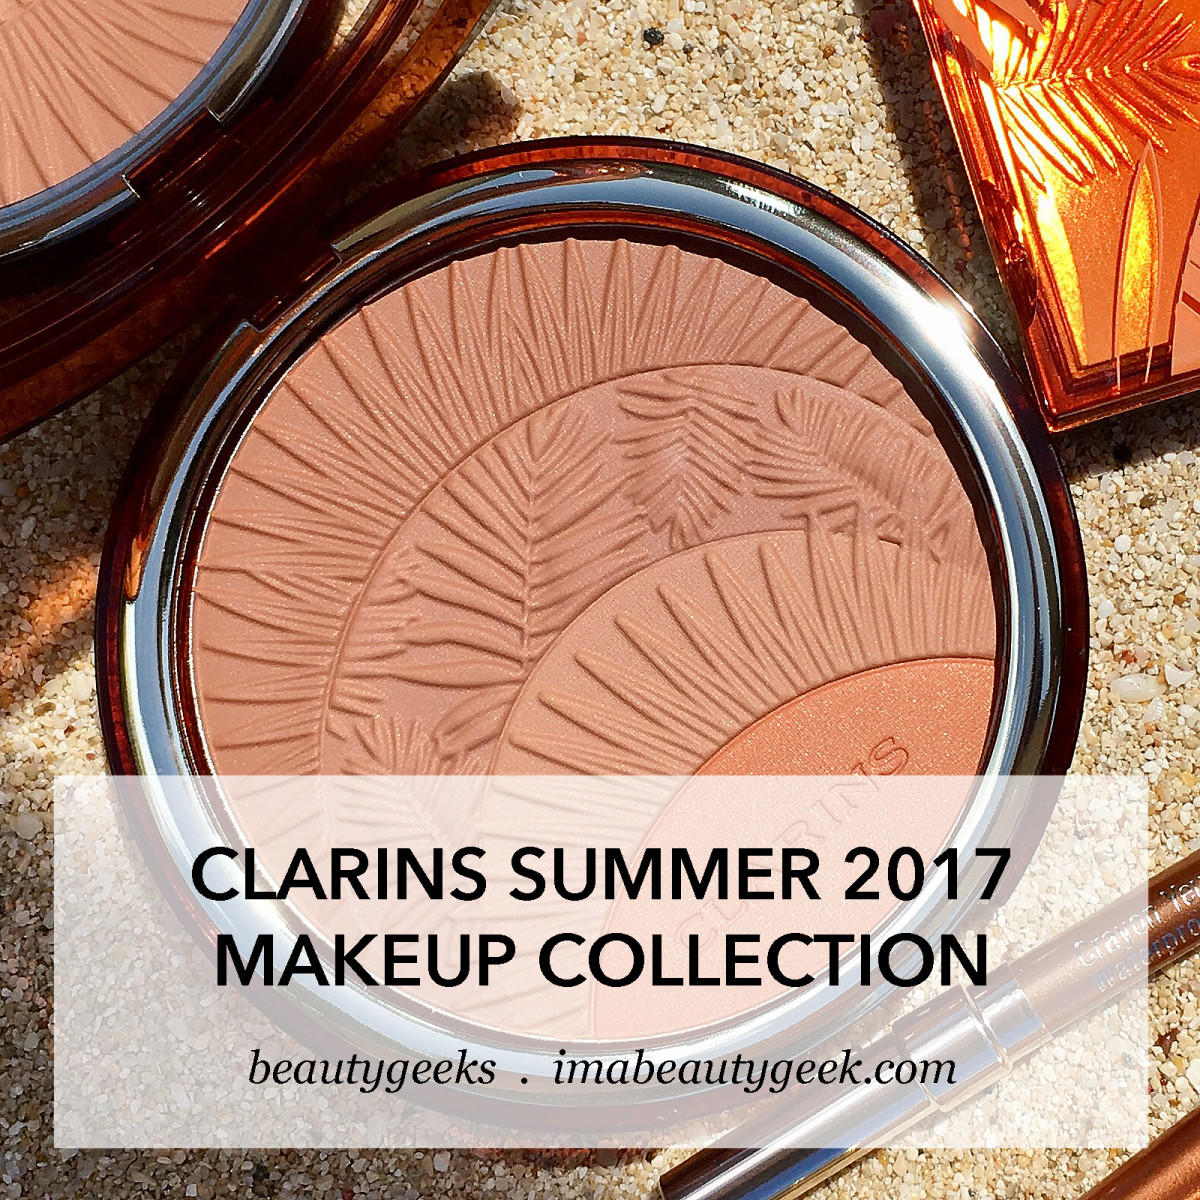 Clarins summer 2017 limited-edition makeup